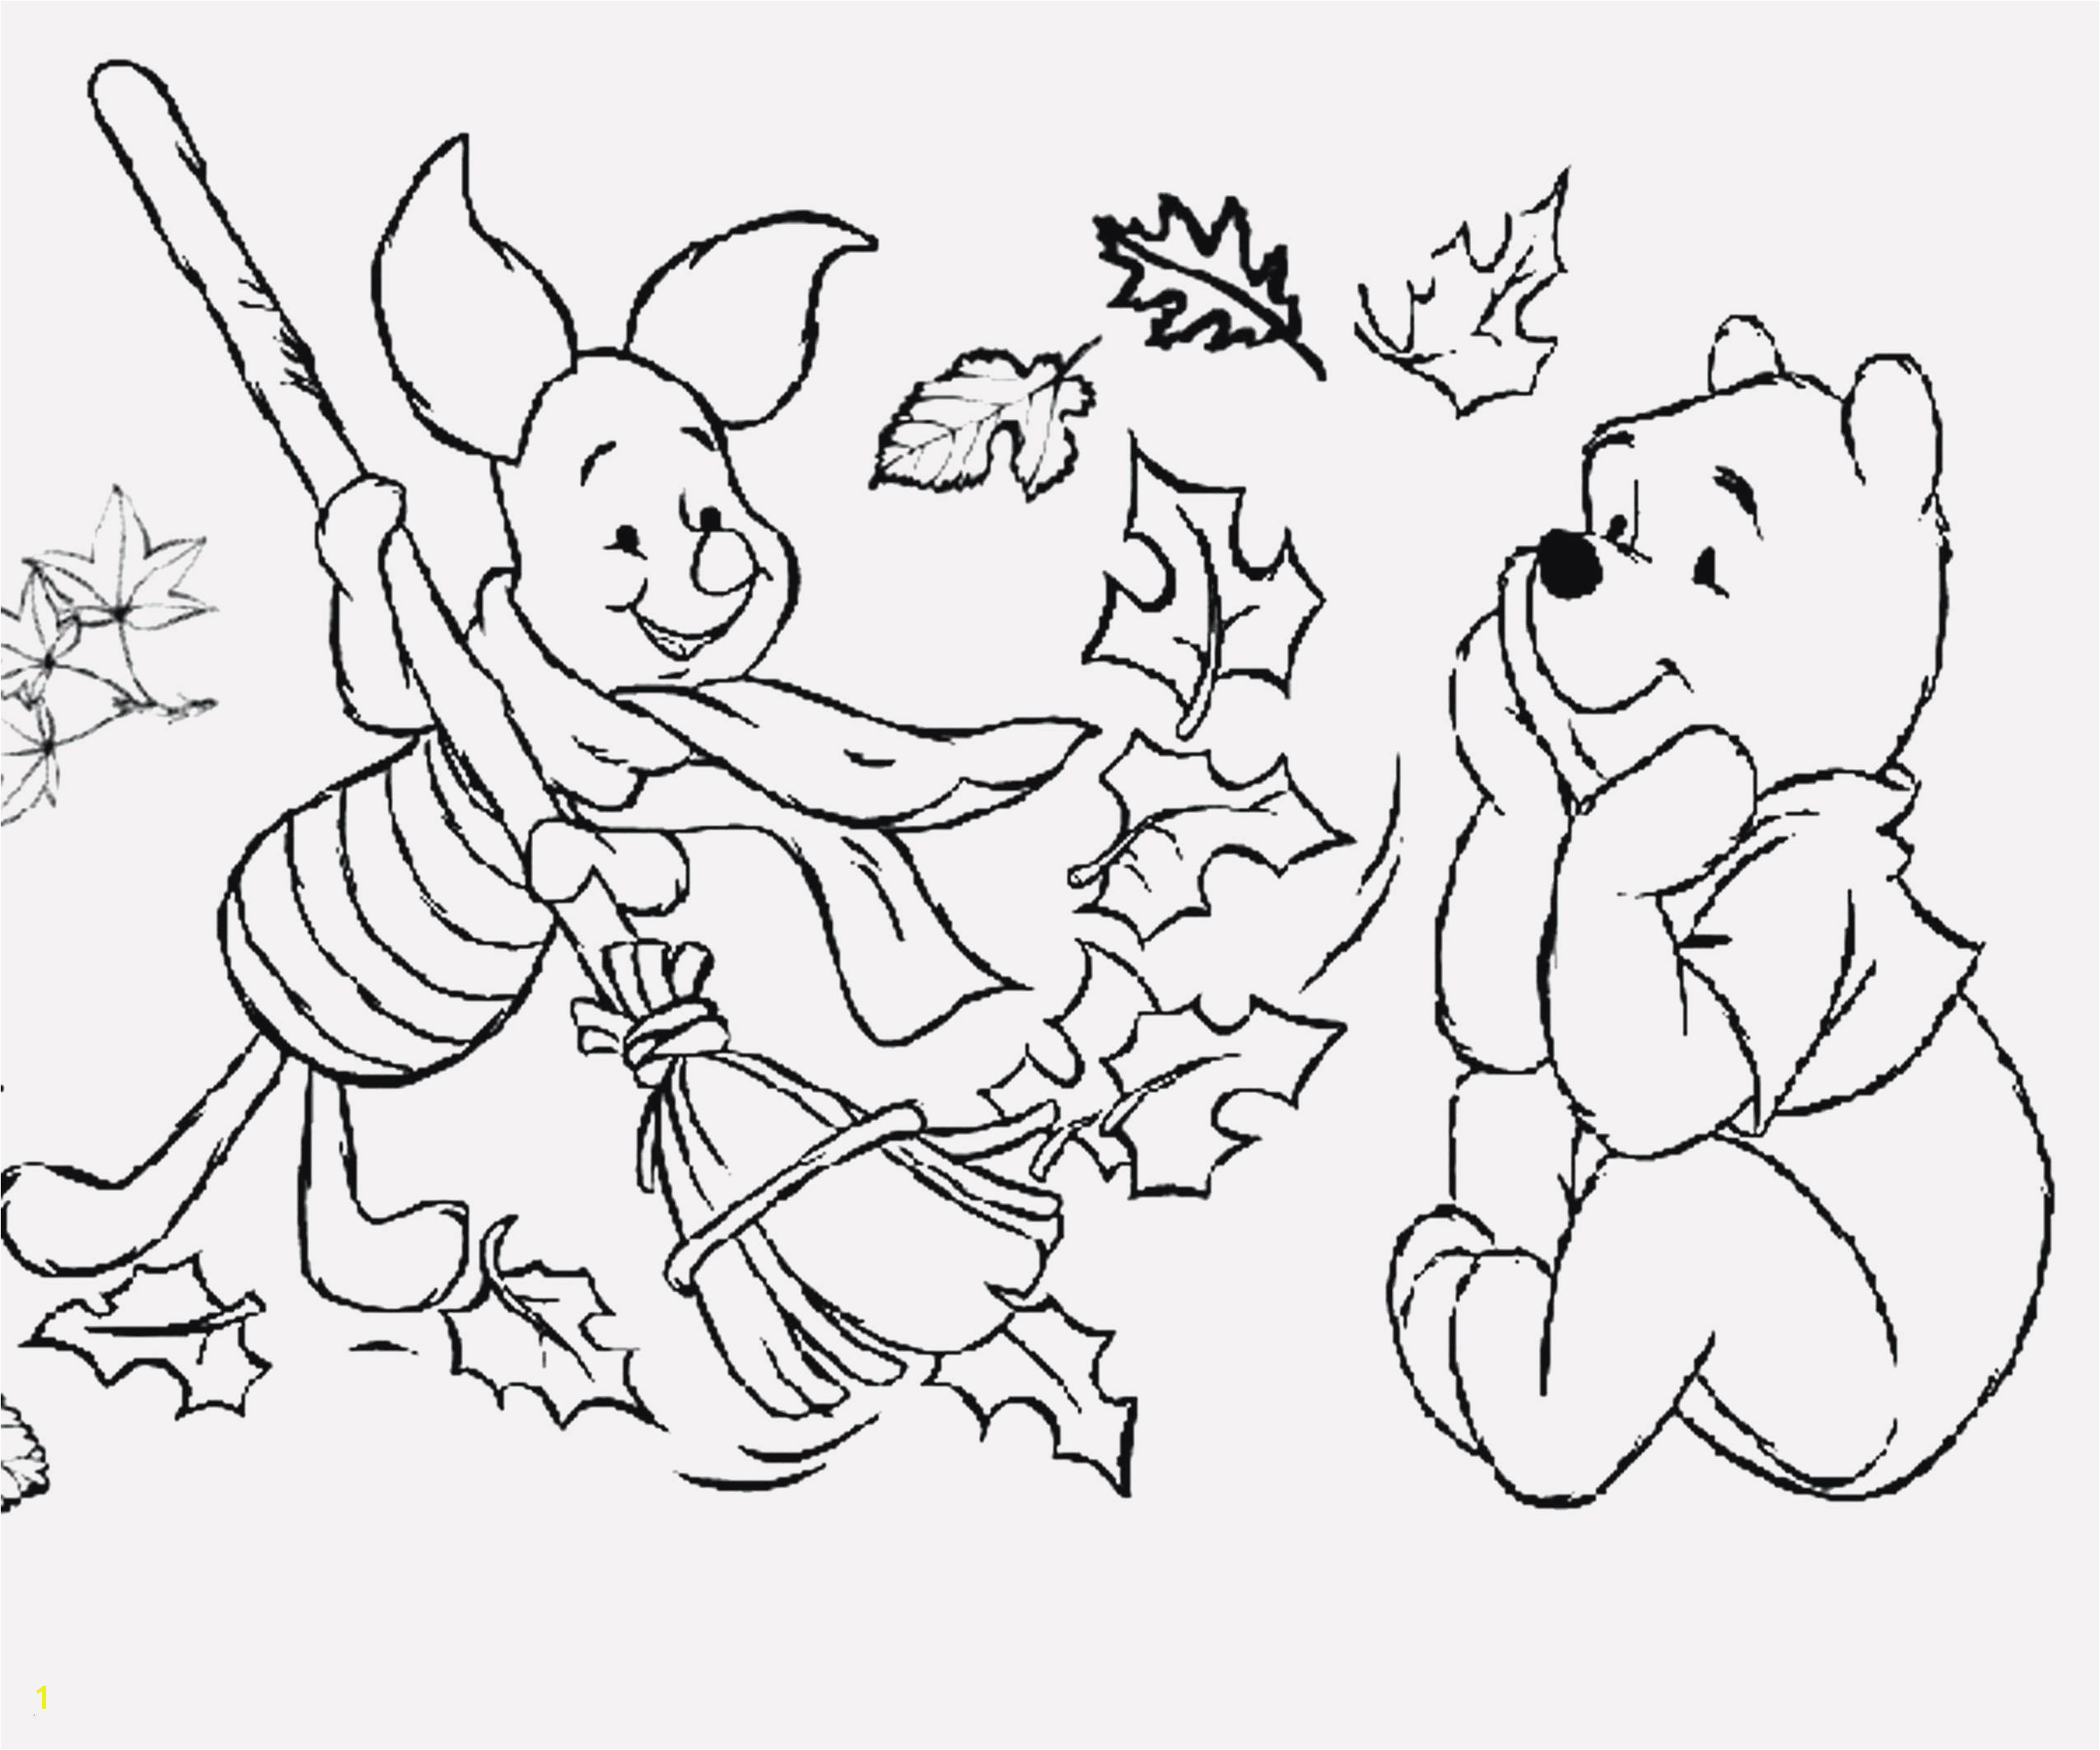 Dragon Ball Z Coloring Pages Autumn Coloring Pages Printable Awesome Kids Printable Coloring Pages Elegant